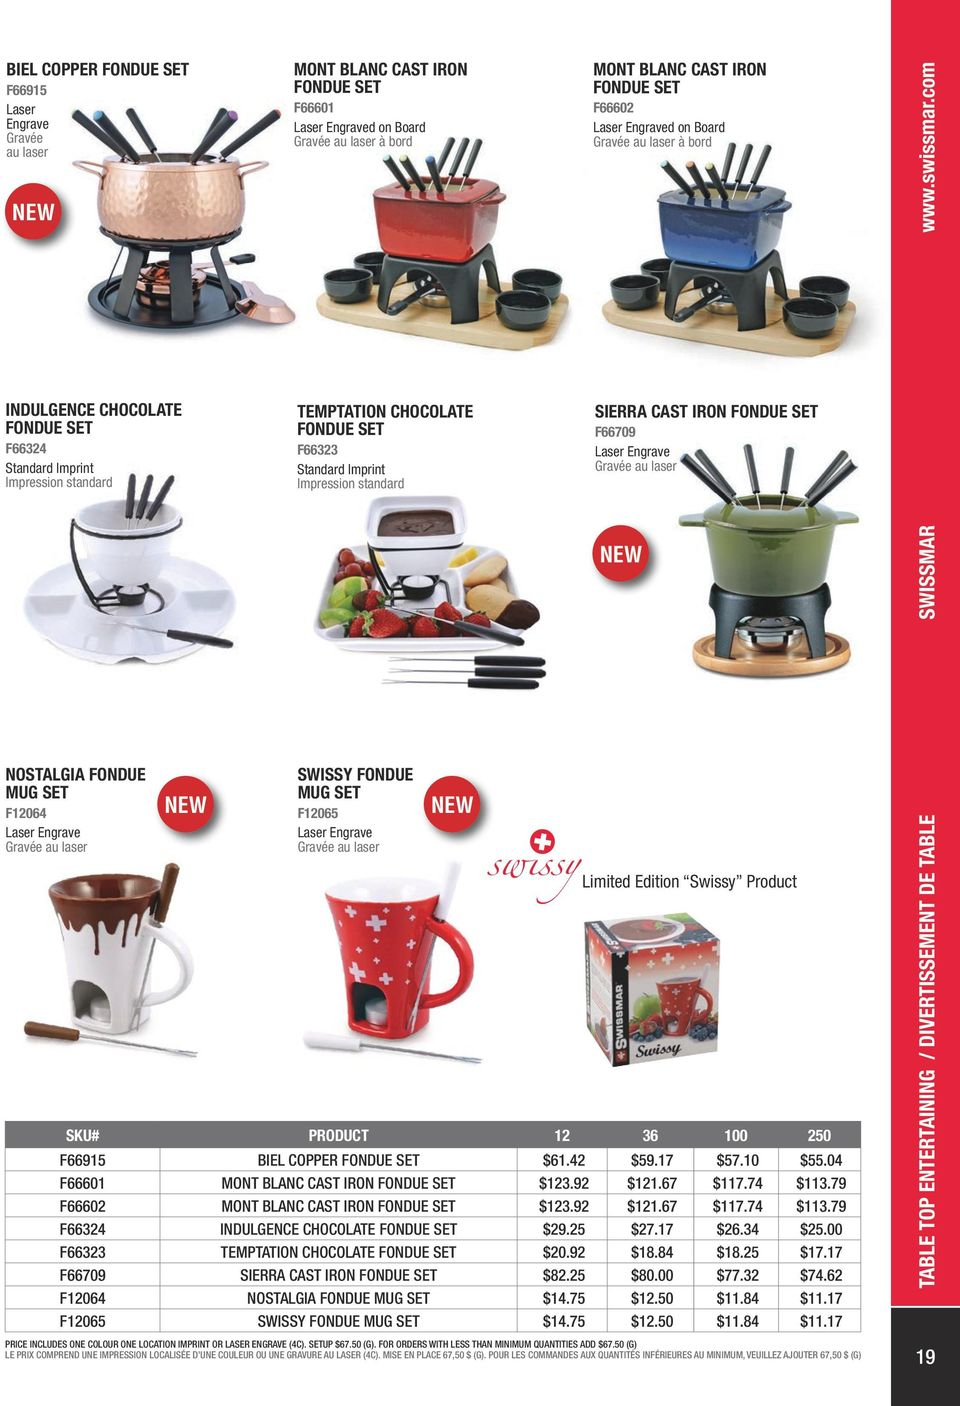 BIEL COPPER FONDUE SET $61.42 $59.17 $57.10 $55.04 F66601 MONT BLANC CAST IRON FONDUE SET $123.92 $121.67 $117.74 $113.79 F66602 MONT BLANC CAST IRON FONDUE SET $123.92 $121.67 $117.74 $113.79 F66324 INDULGENCE CHOCOLATE FONDUE SET $29.